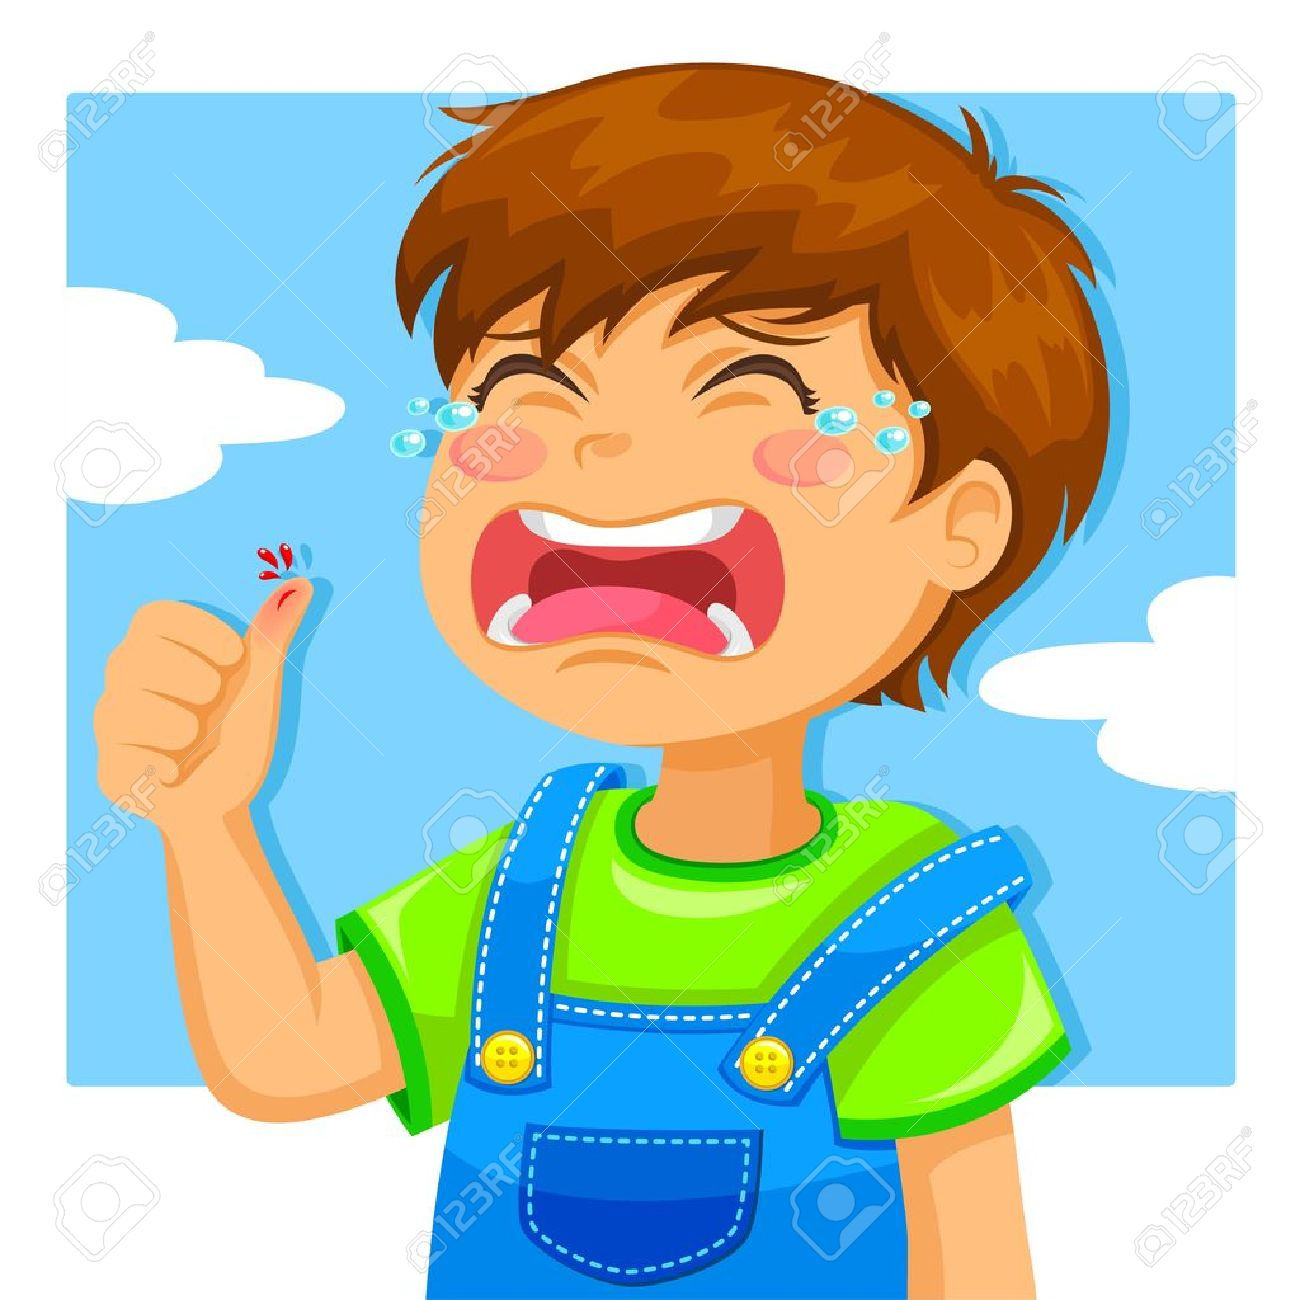 Little Boy Crying Because Of A Cut On His Thumb Royalty Free ...